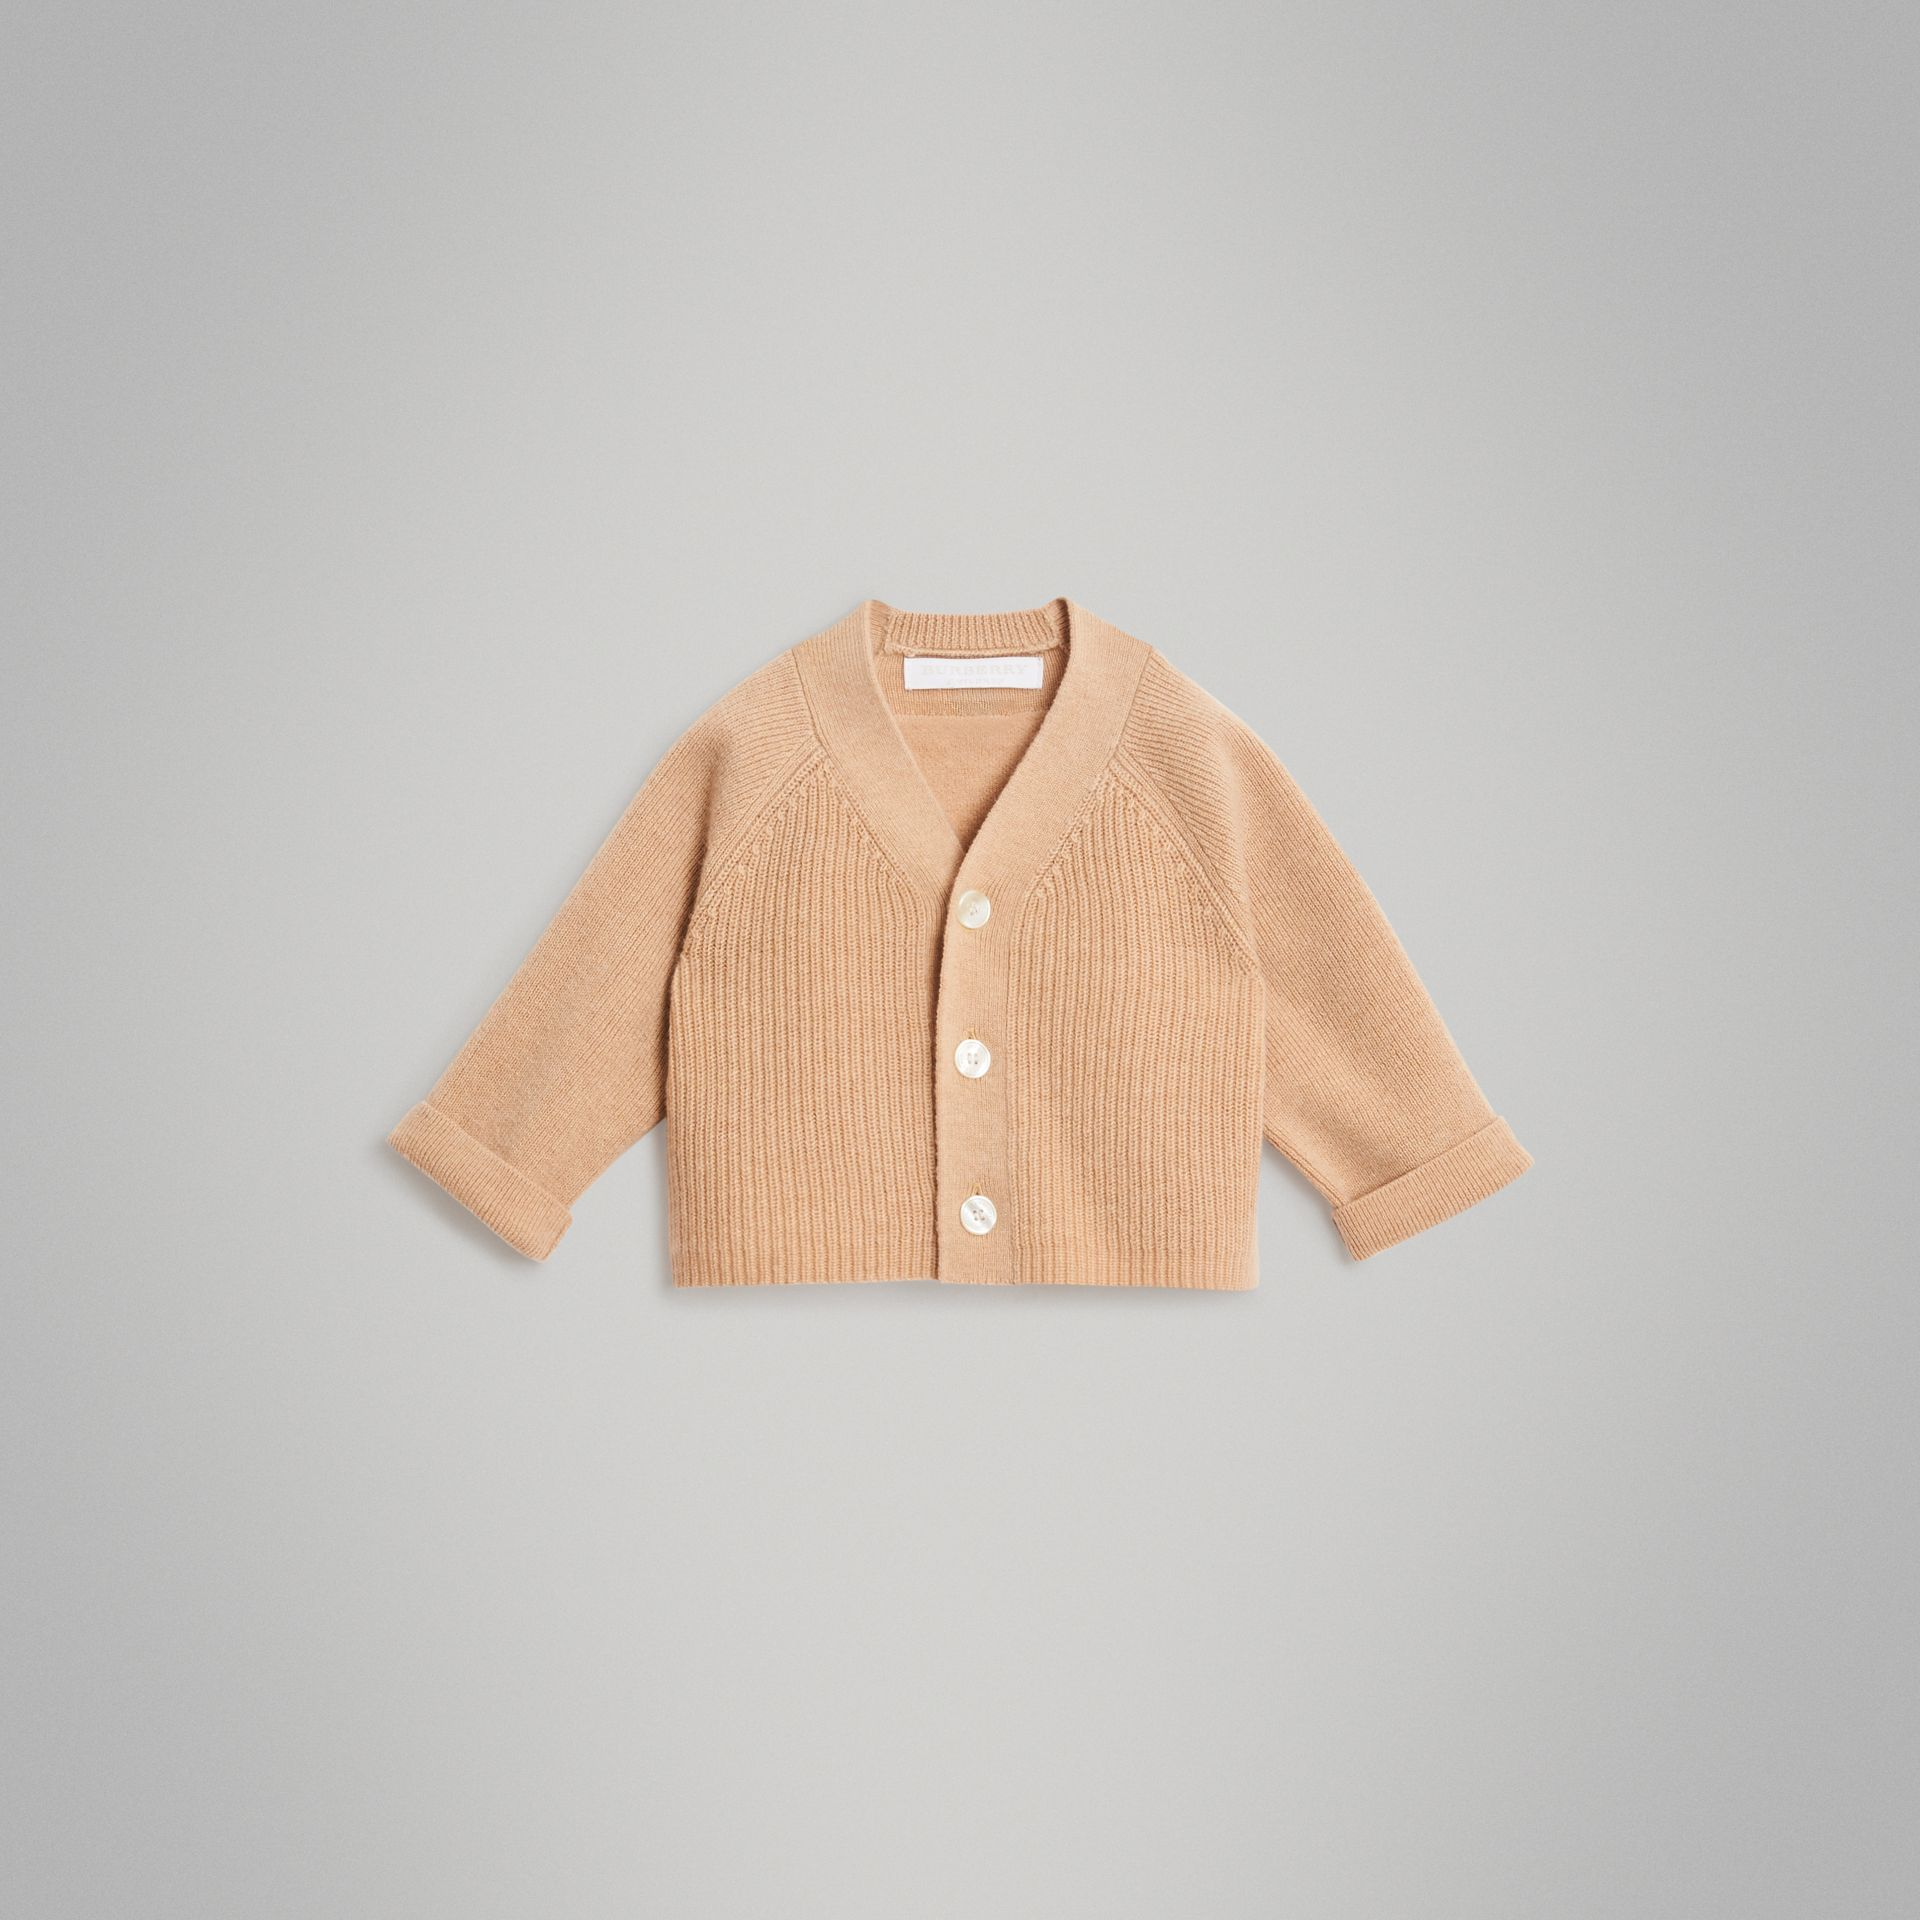 Cashmere Cotton Knit Cardigan in Peach - Children | Burberry Australia - gallery image 0